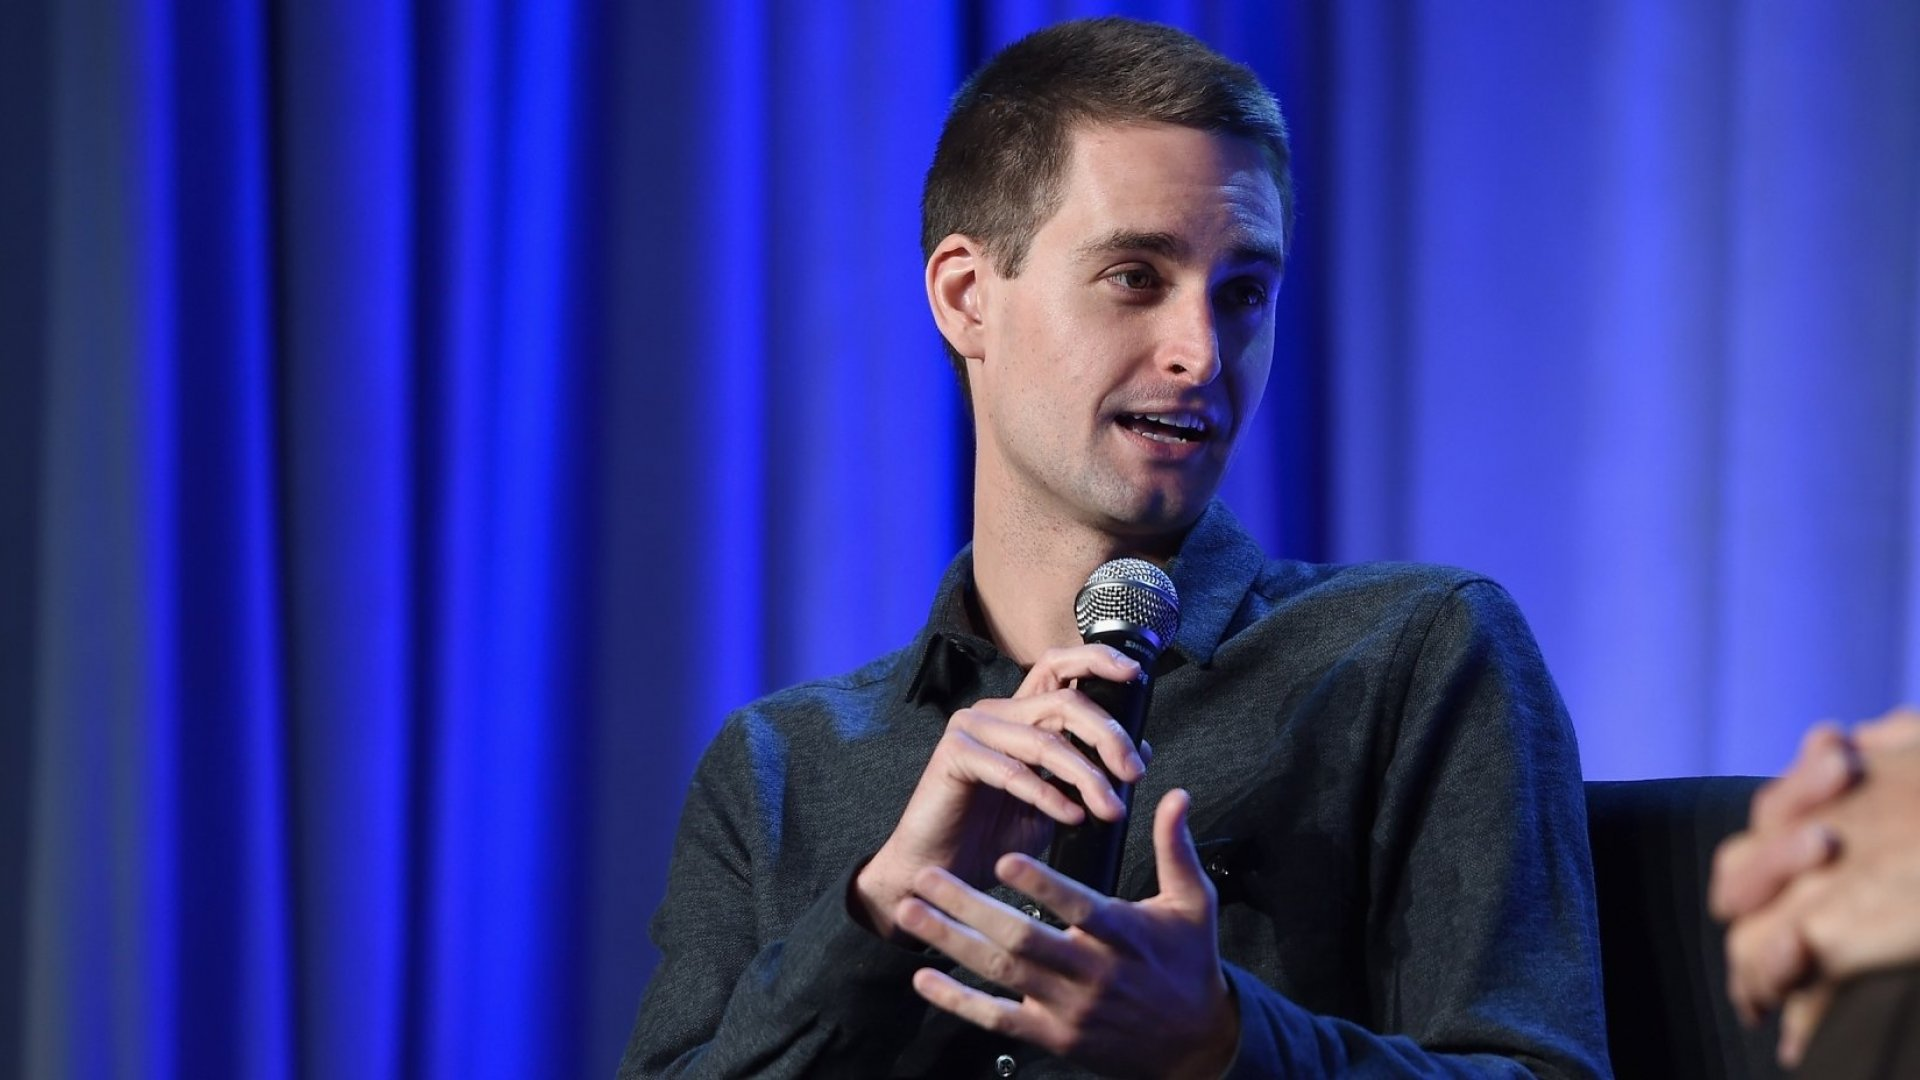 Snapchat's IPO presentation offers 5 valuable lessons for your next pitch